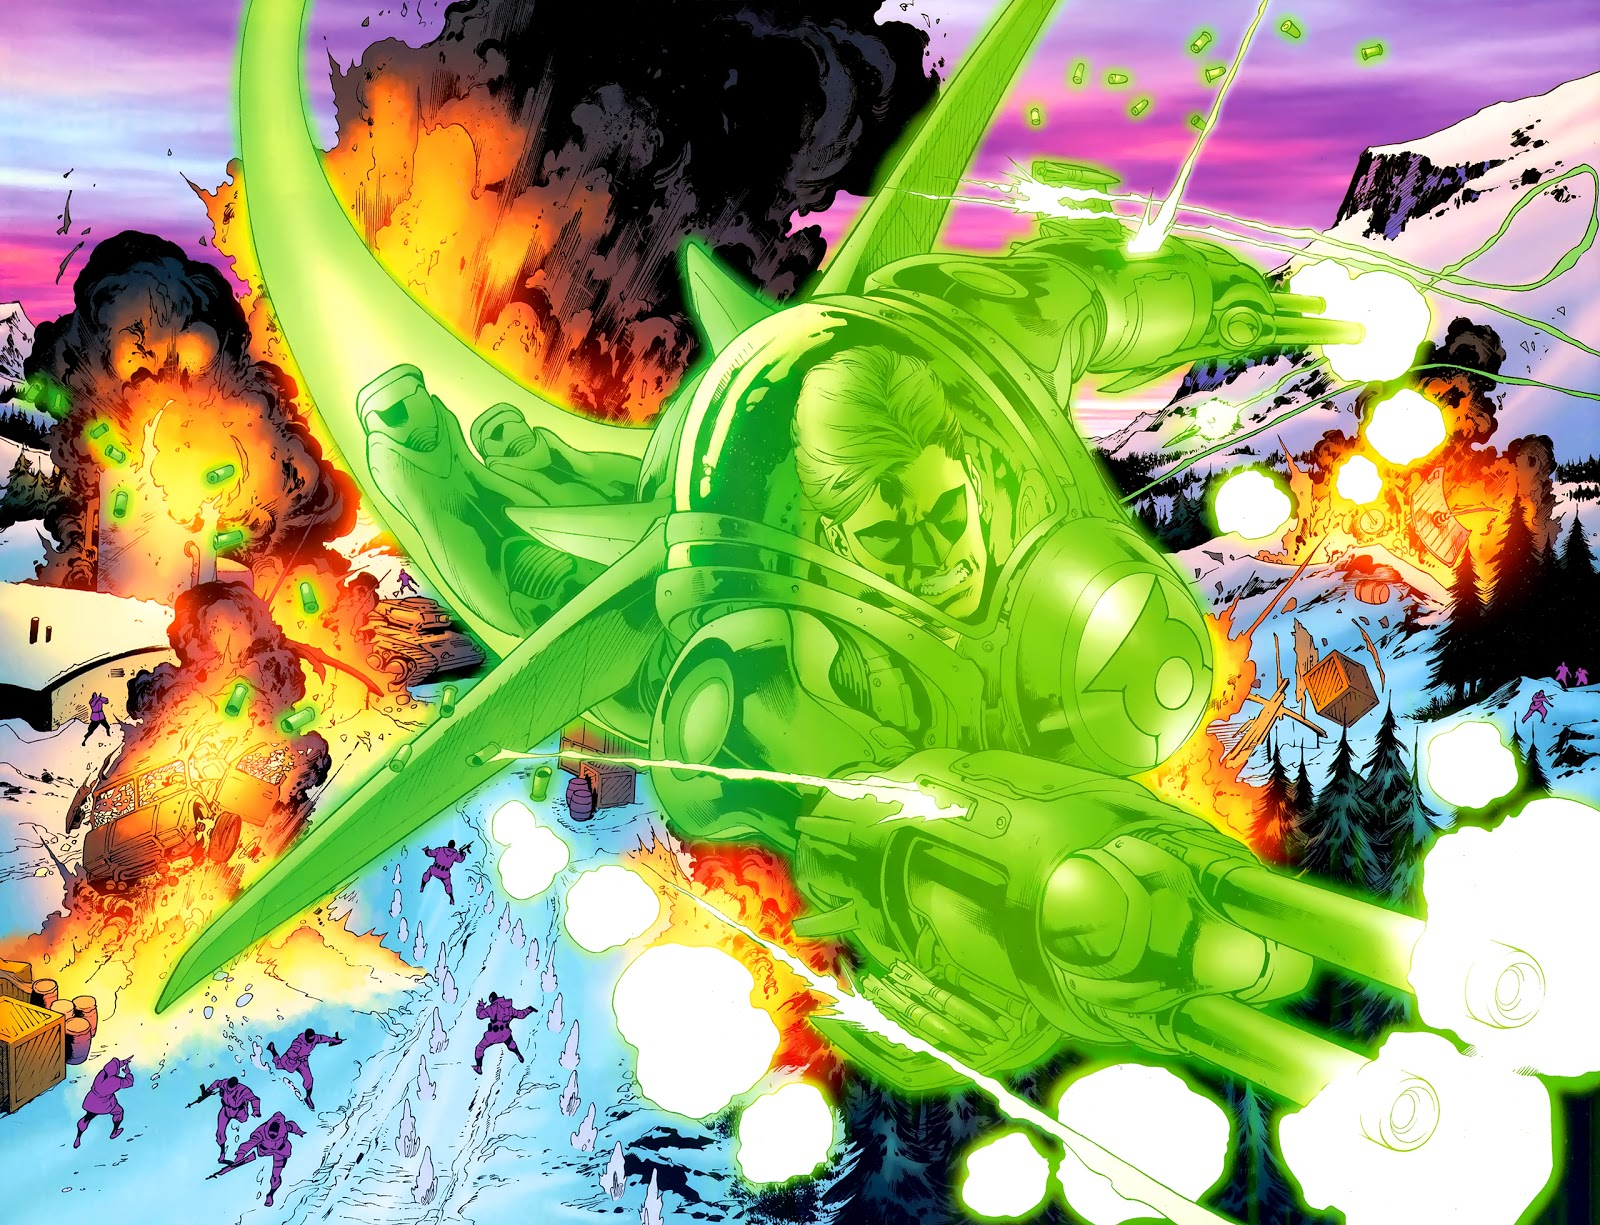 Green Lantern by Geoff Johns Bk 2 review